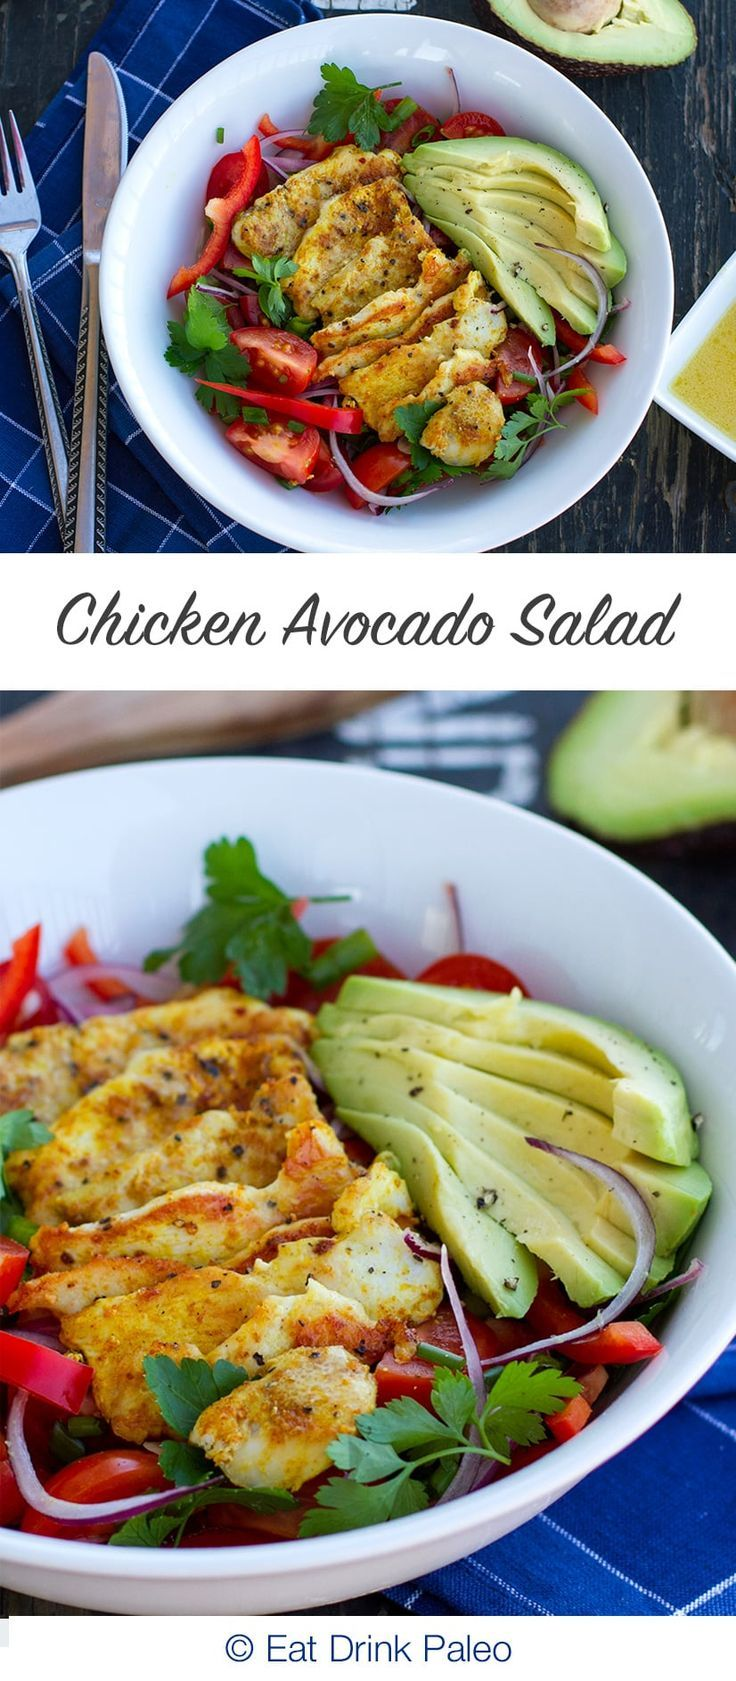 Warm Chicken Salad With Avocado |  Paleo, Gluten Free, Real Food Recipe. Click here: http://eatdrinkpaleo.com.au/warm-chicken-salad-with-avocado/